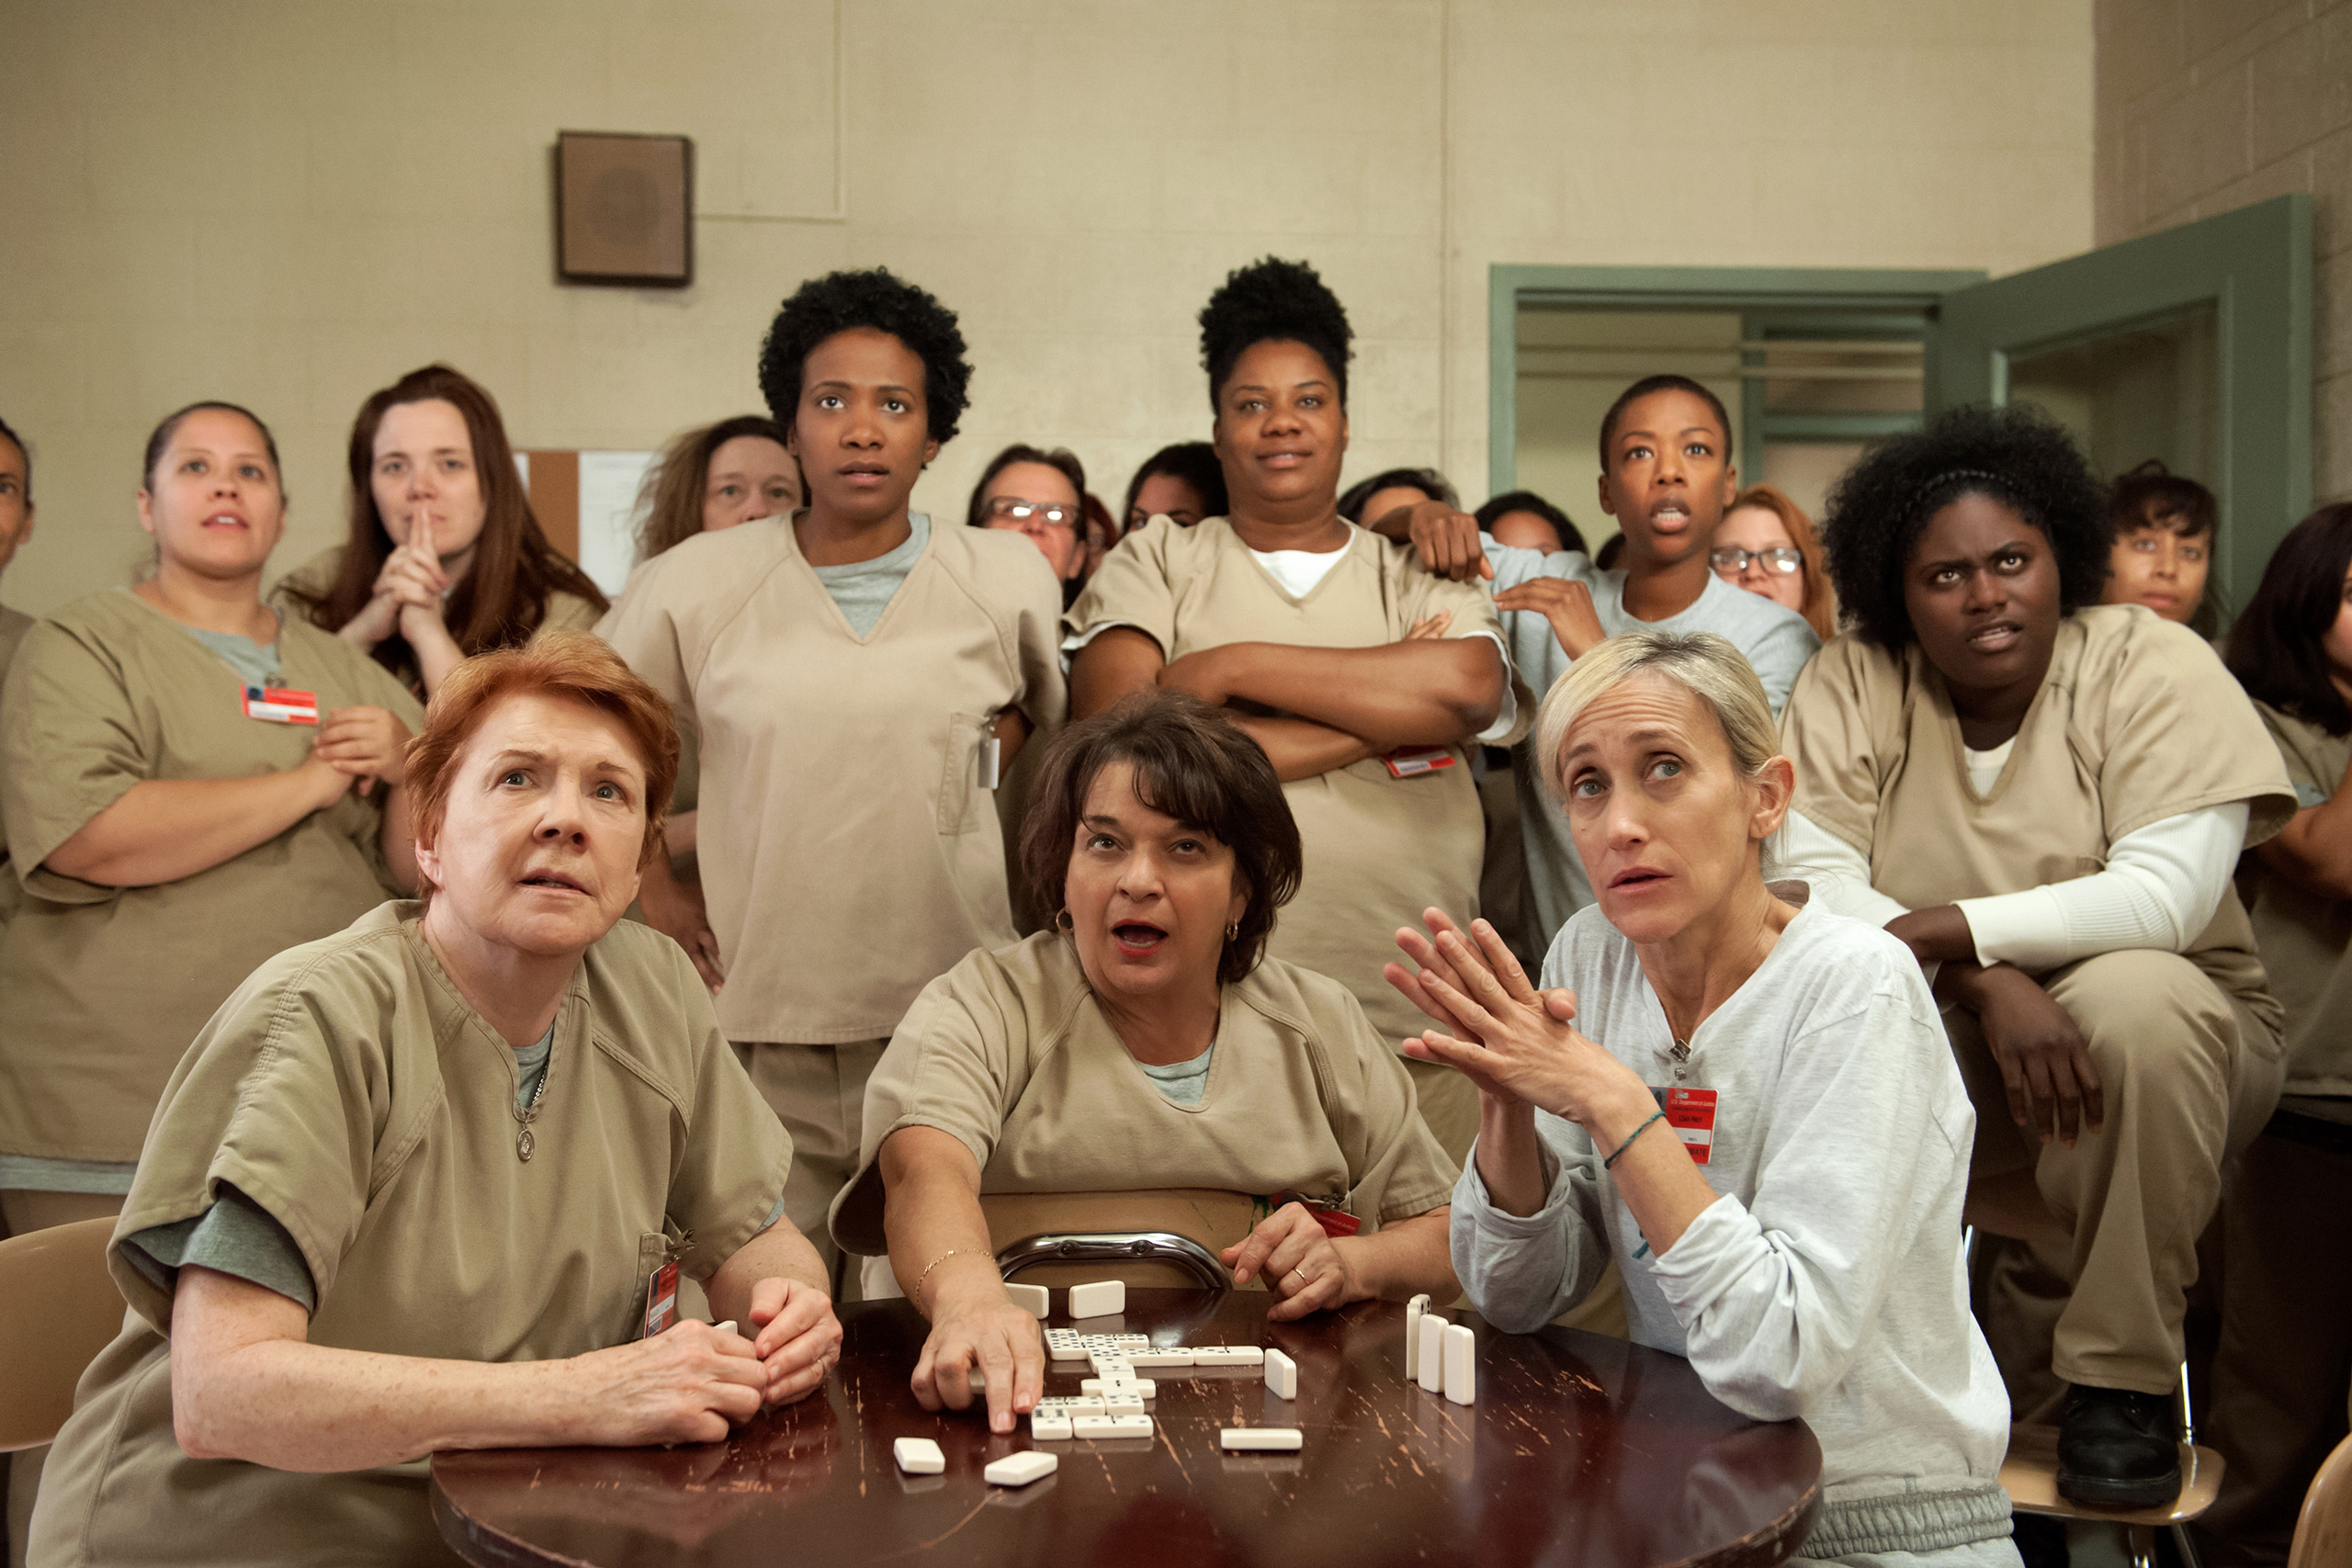 A scene from Season 3 of  Orange is the New Black